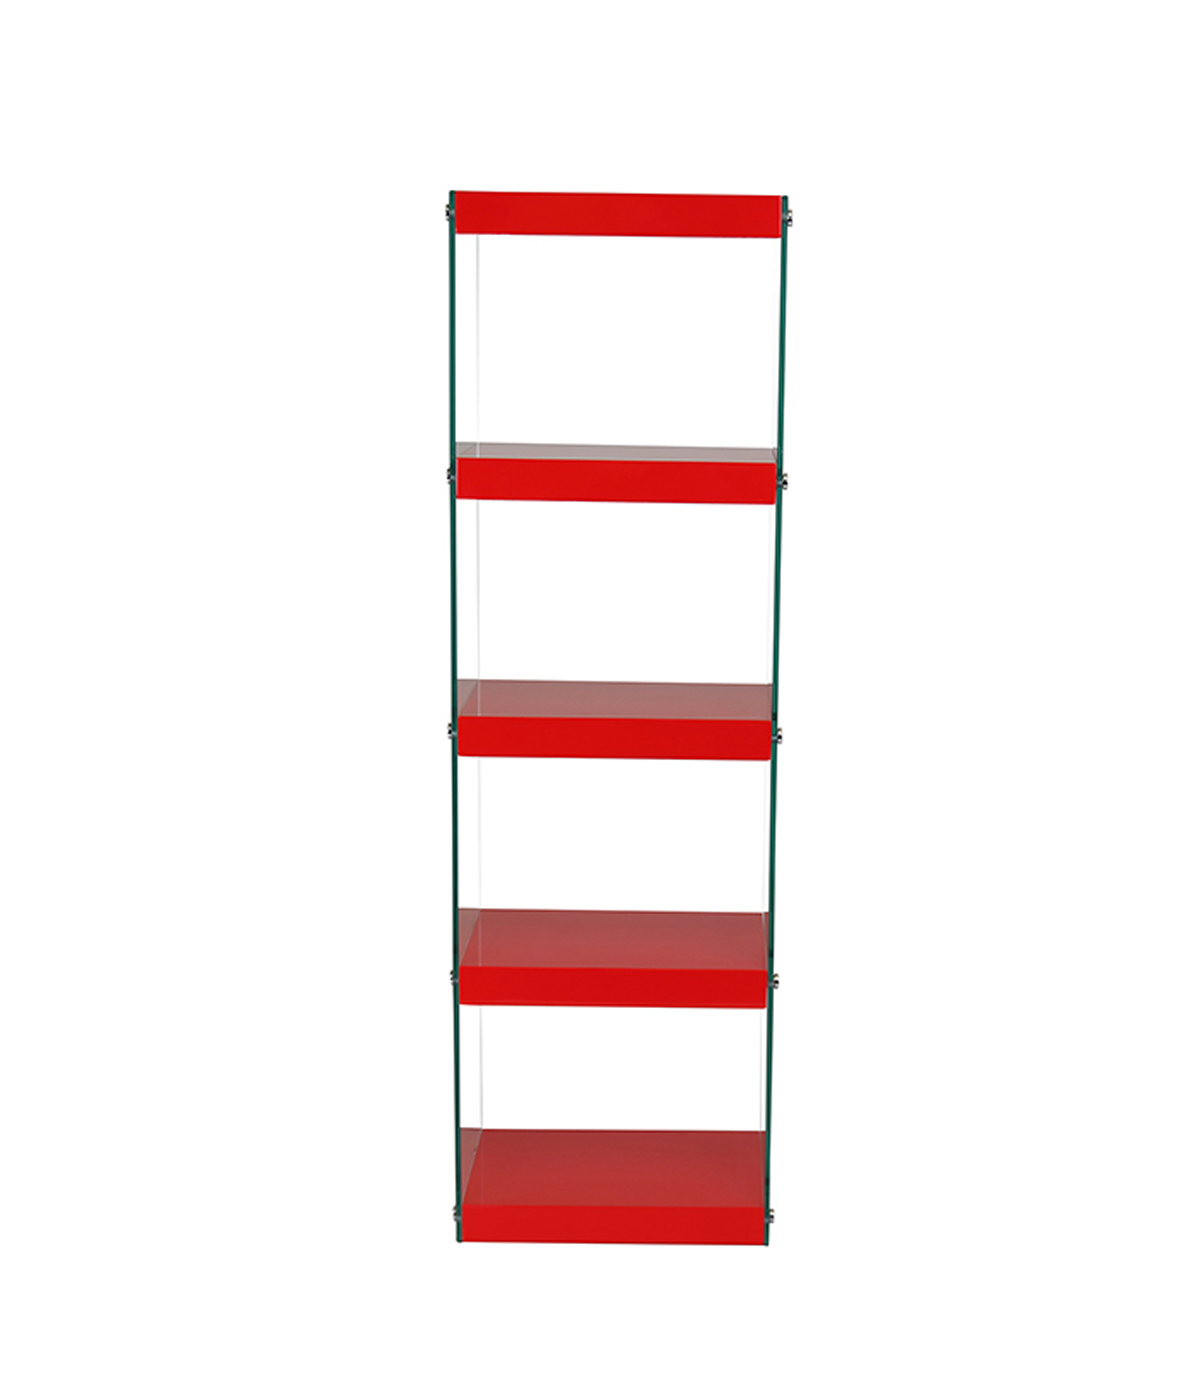 Manchester Furniture Supplies : Moda20Large20Red203 from www.manchesterfurnituresupplies.co.uk size 1200 x 1386 jpeg 201kB